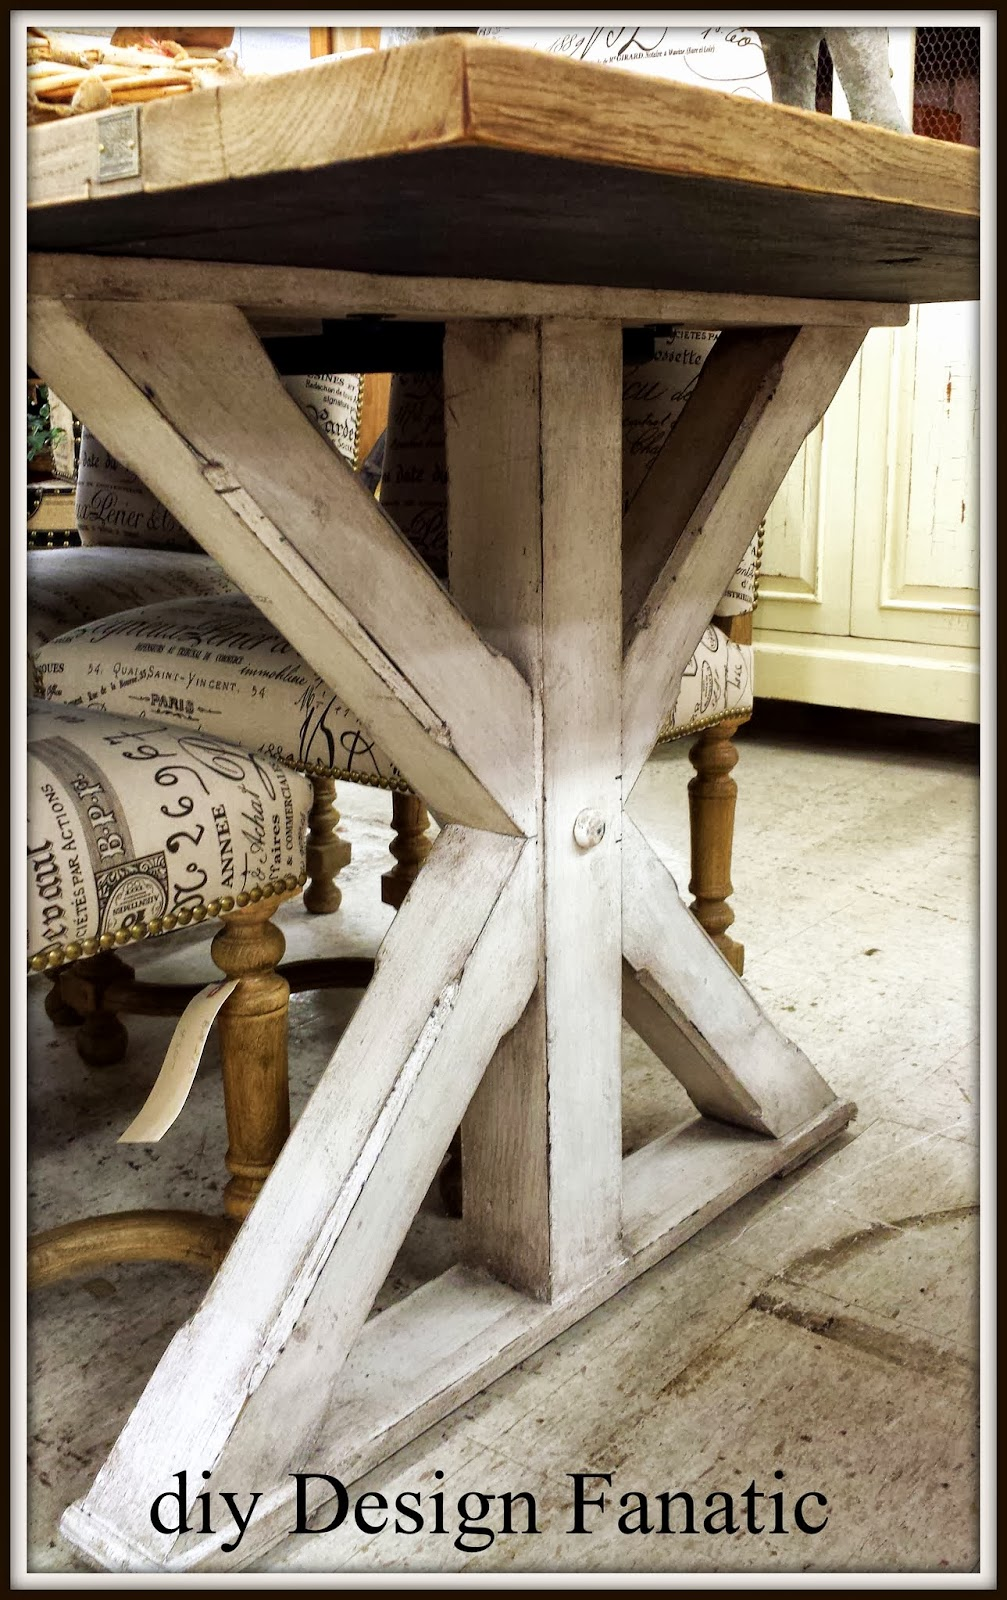 Bench Dining Tables: Farmhouse Table, Vintage Finds, Diydesignfanatic.com